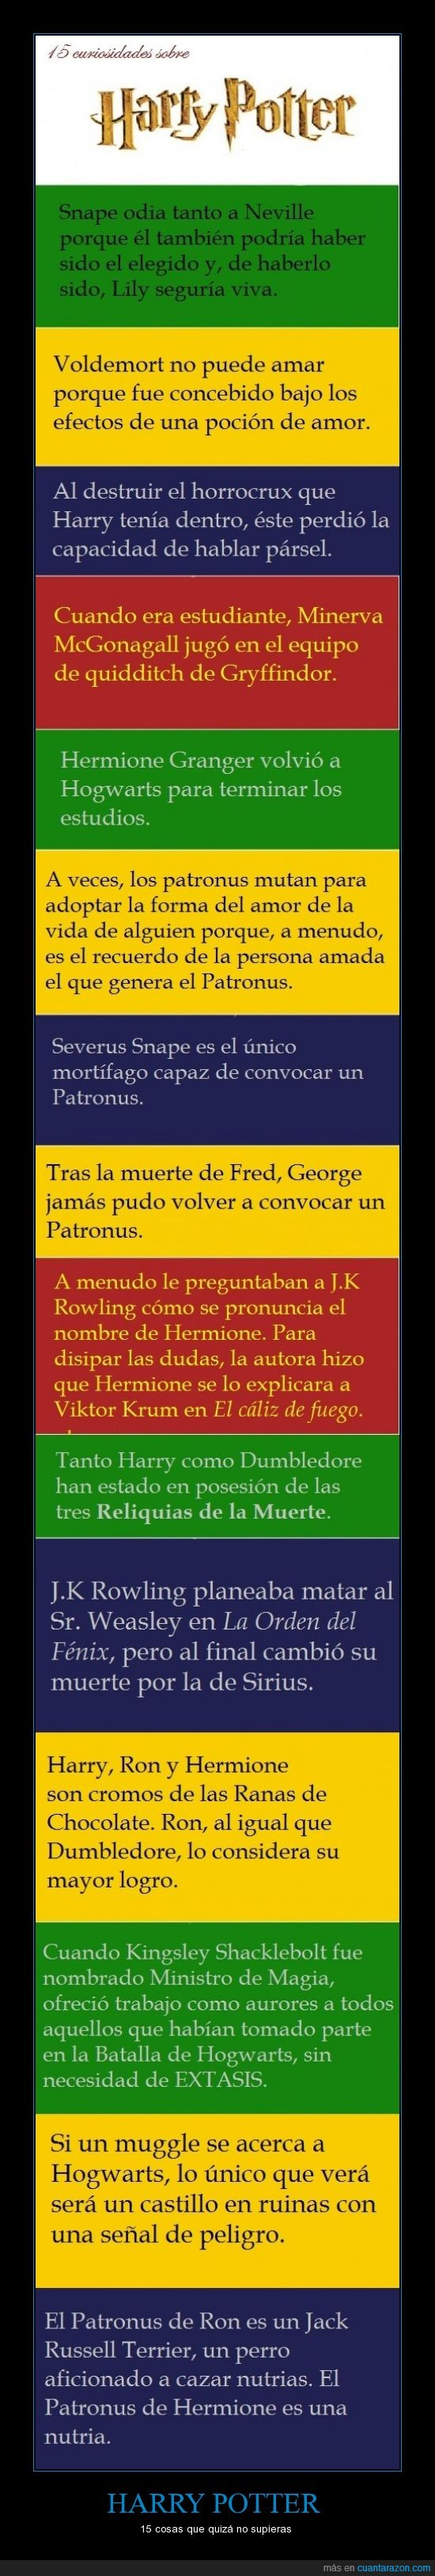 curiosidades,harry potter,hechos,hermione,hogwarts,patronus,ron,snape,voldemort